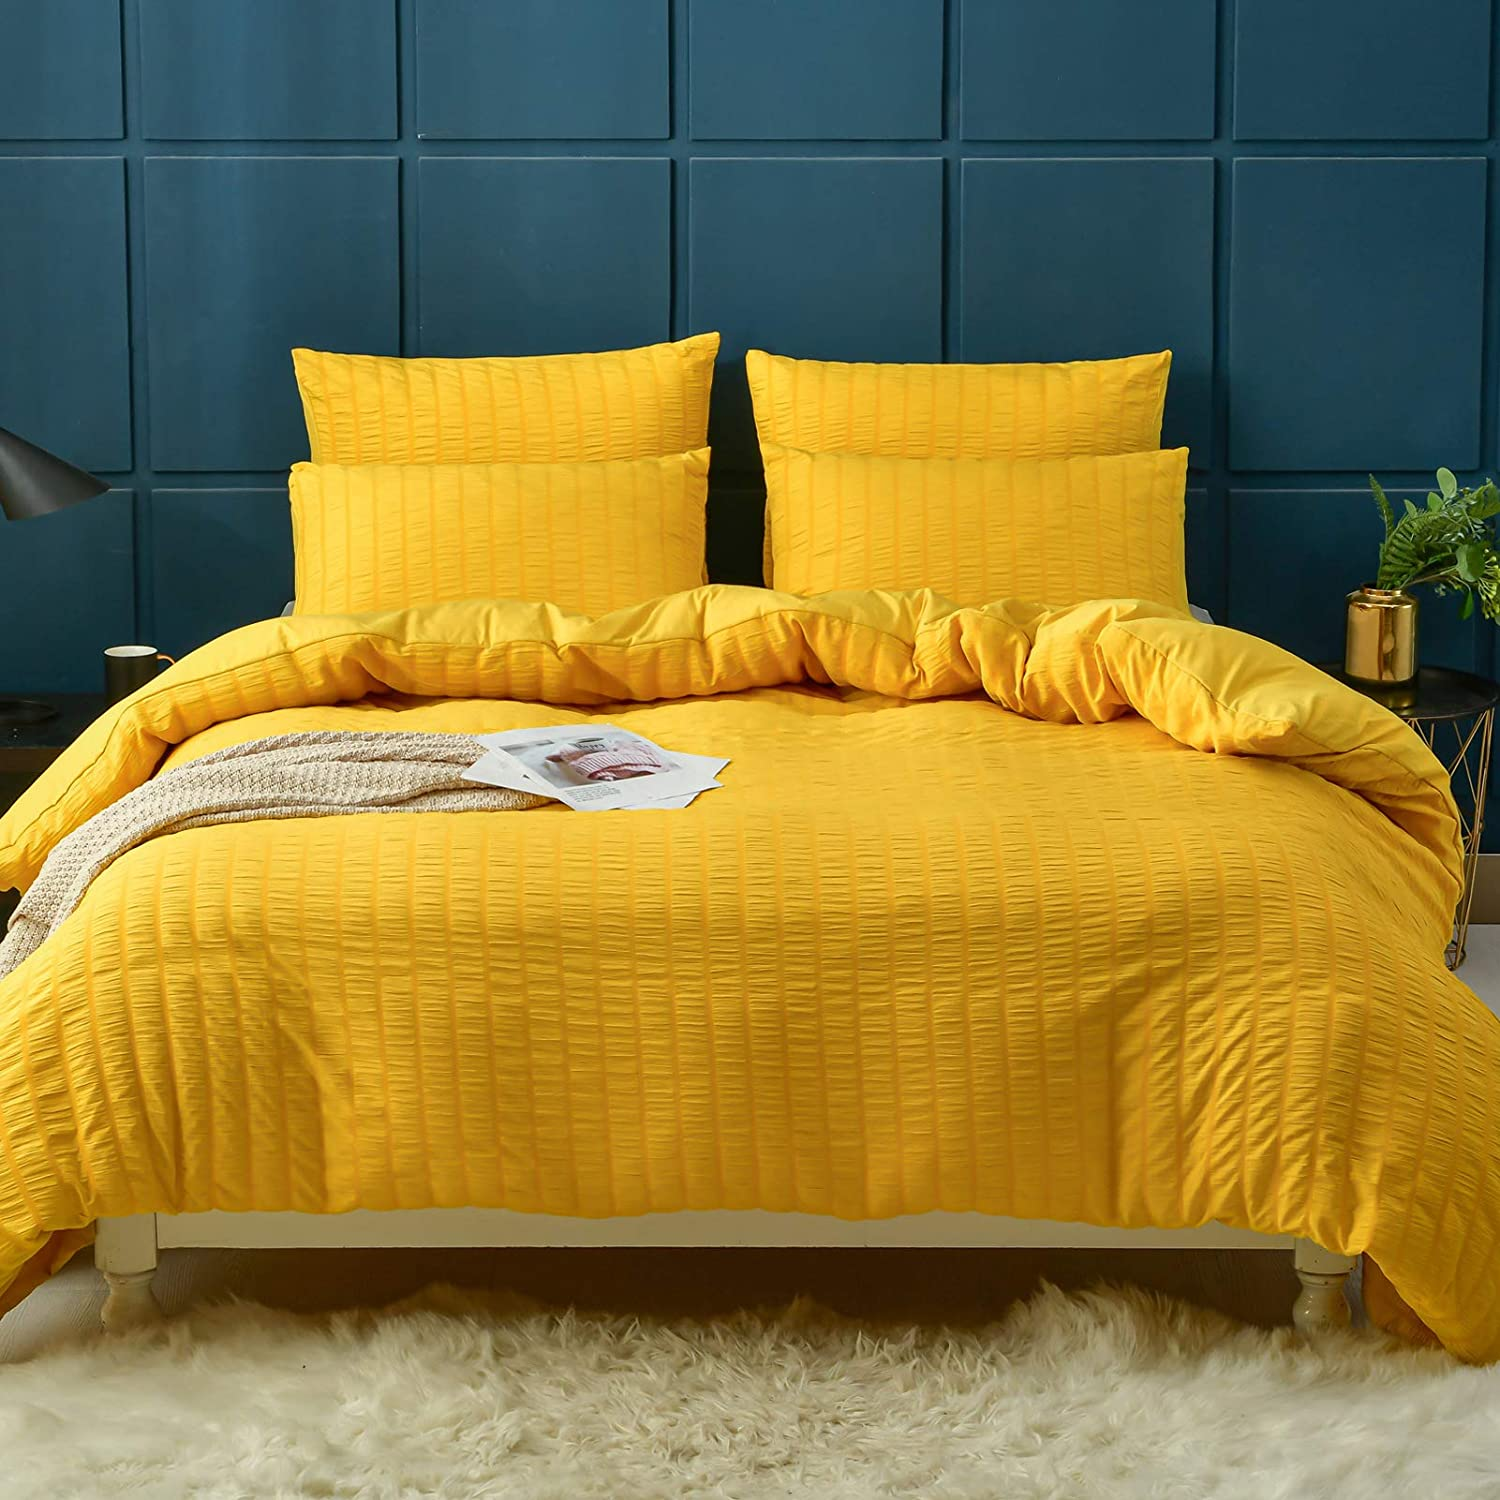 Thallo Seersucker Duvet Cover, 100% Washed Microfiber 3 Piece Duvet Cover Set, Textured Bedding Comforter Cover Sets with Zipper Closure(Yellow King)